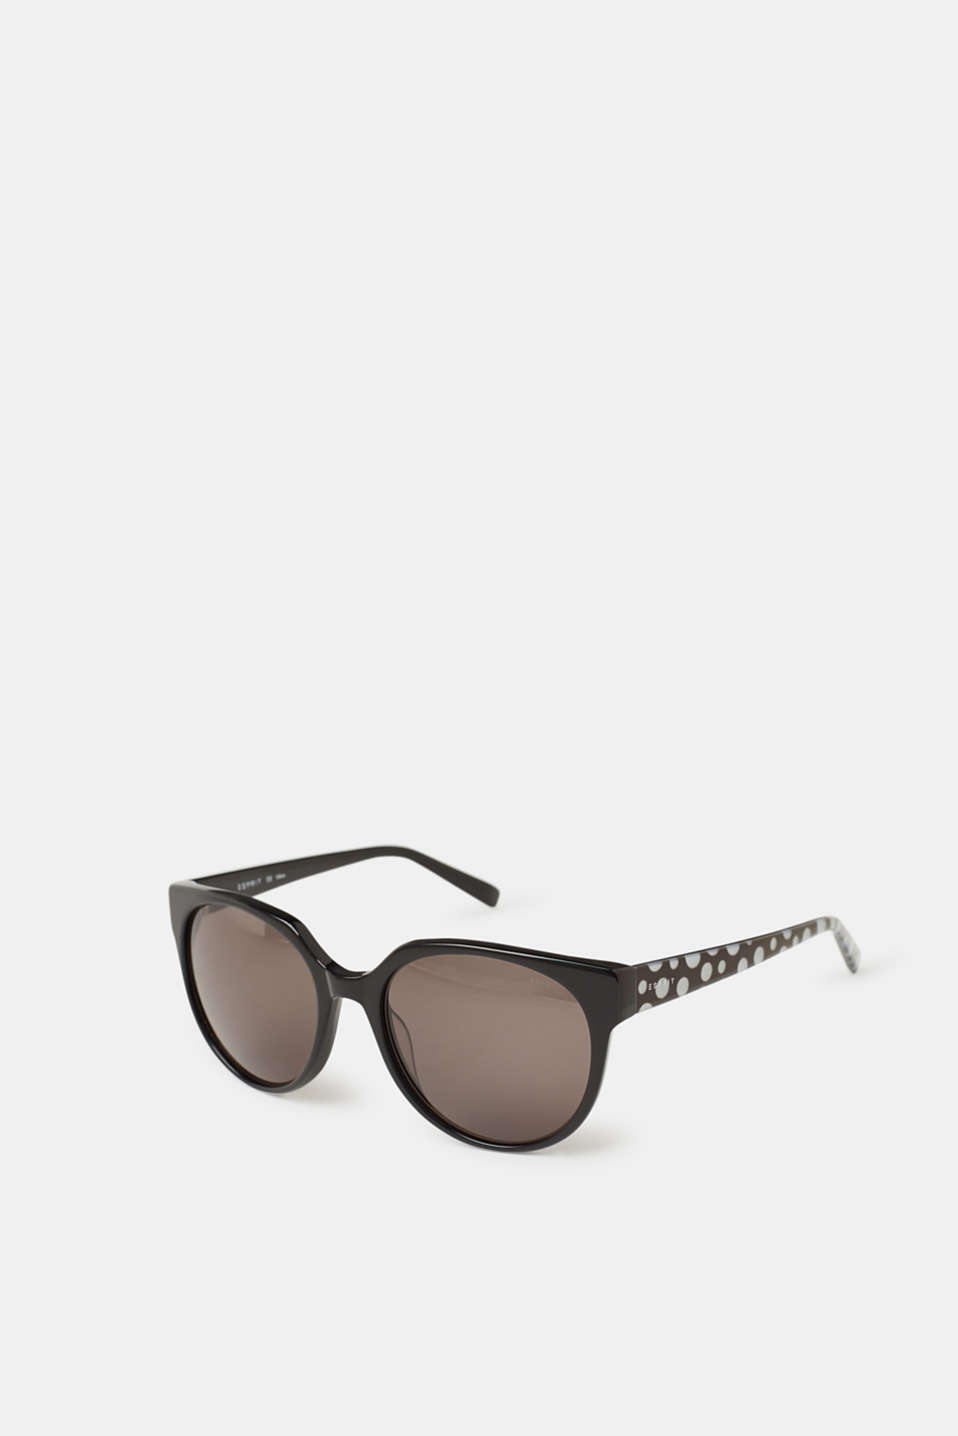 Esprit - Sunglasses with a polka dot pattern